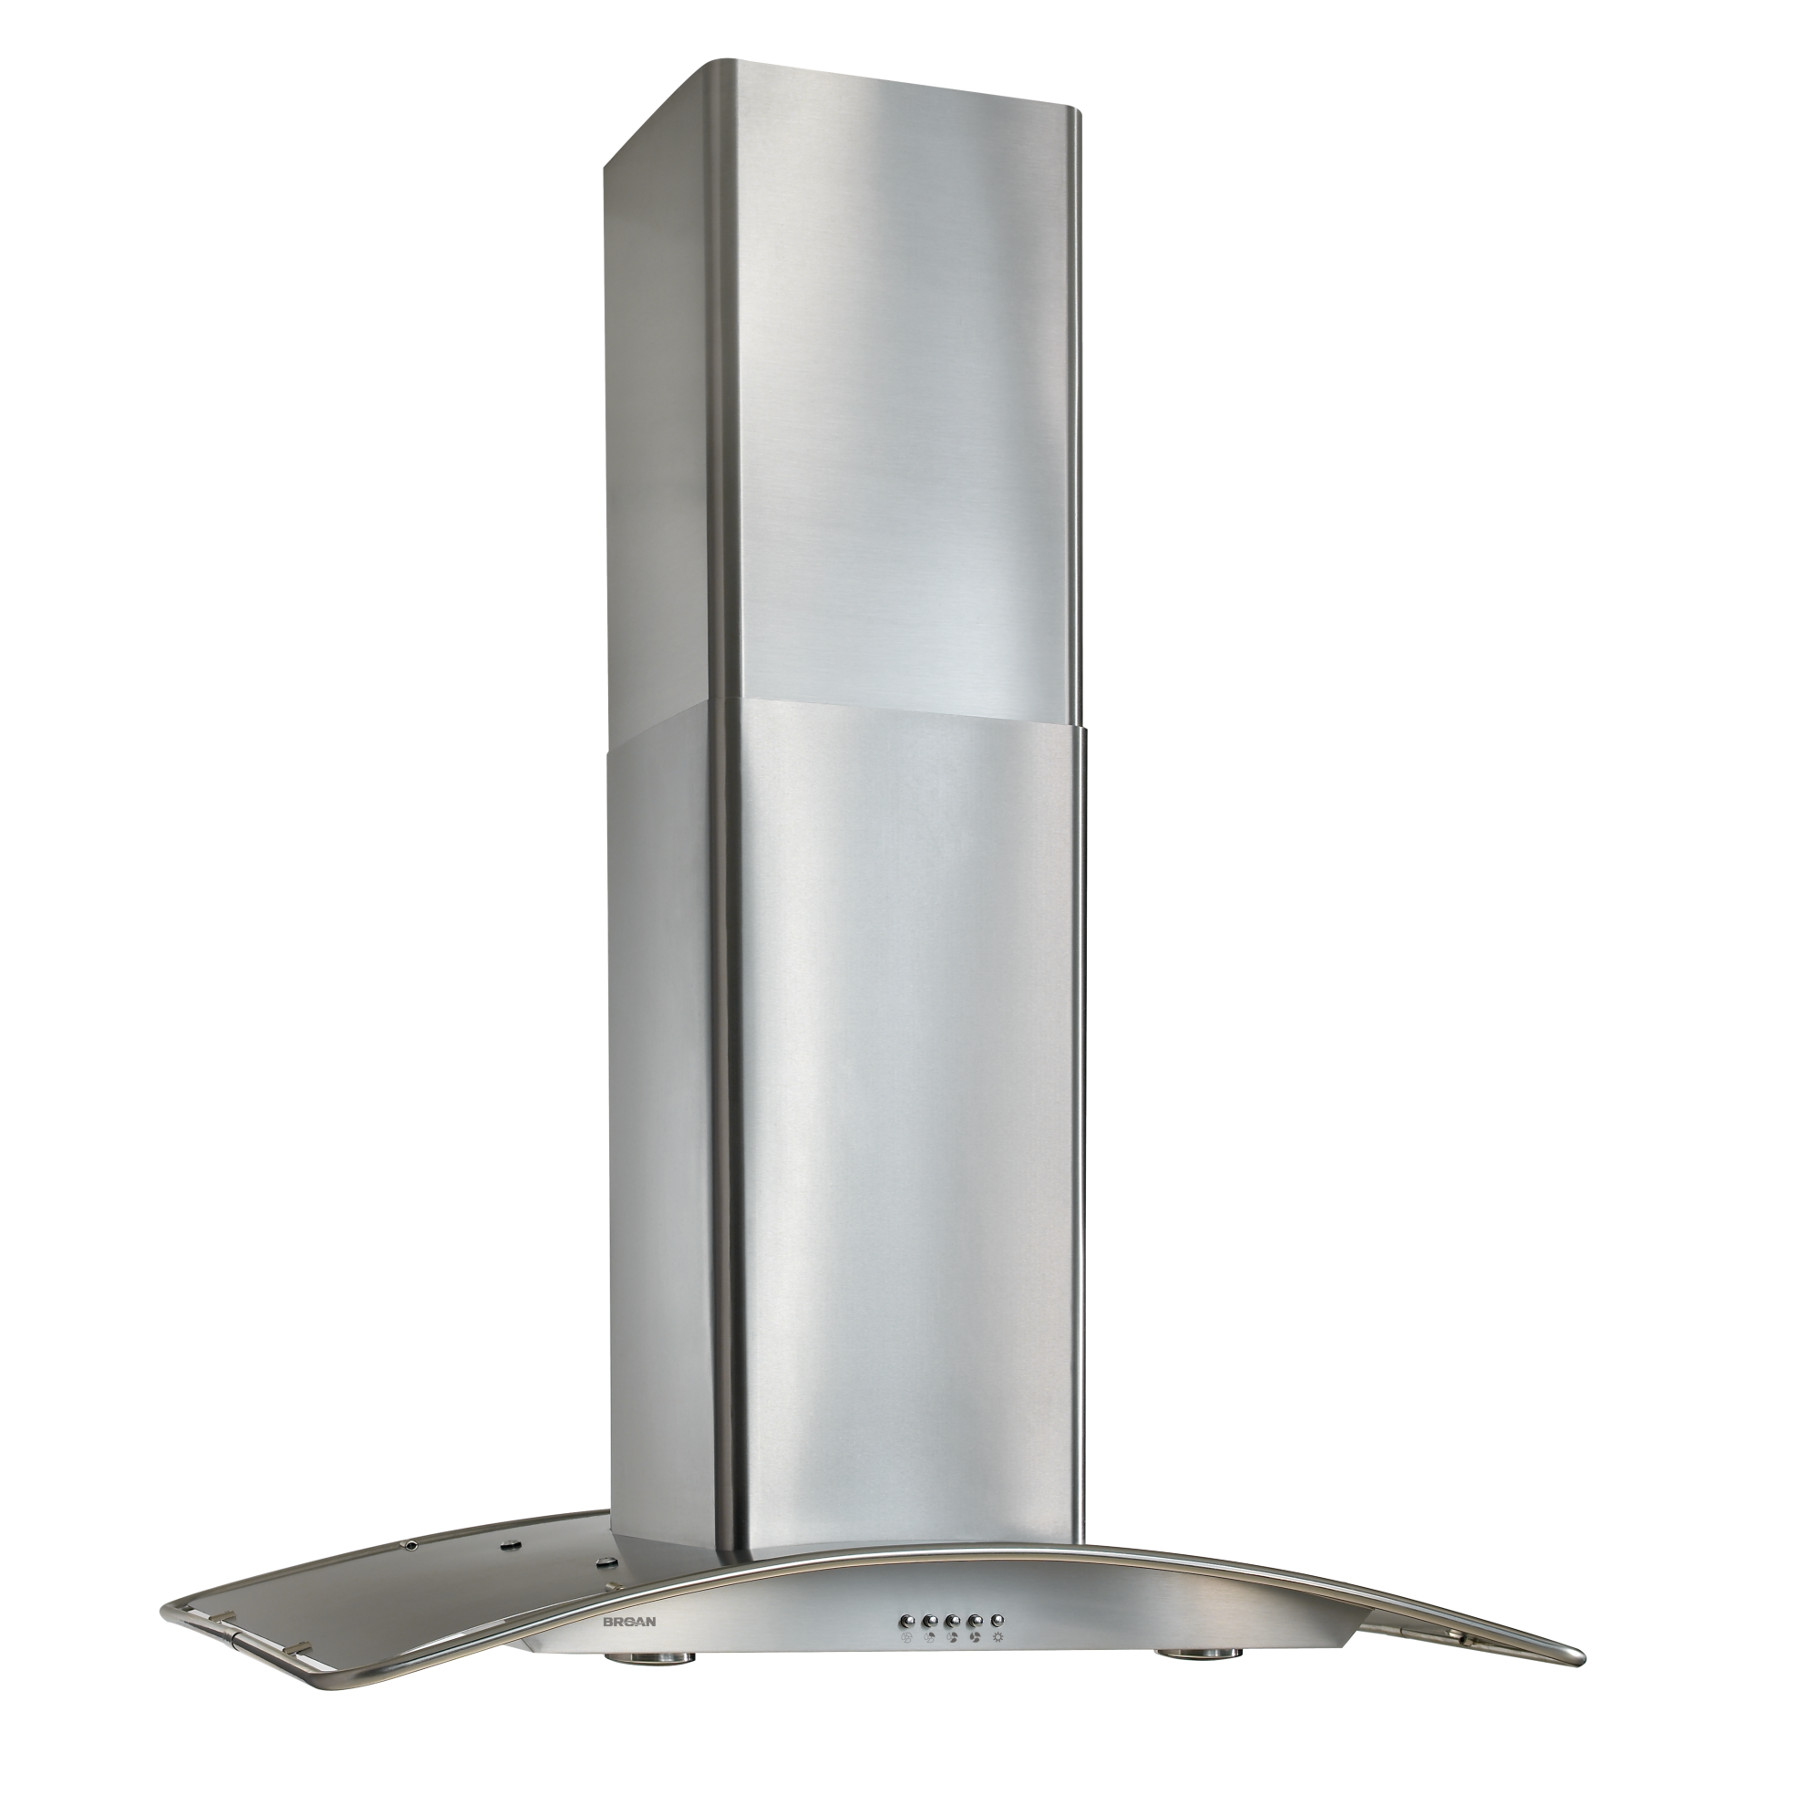 Broan® 36-Inch Convertible Arched Glass Island Range Hood, 450 CFM, Stainless Steel